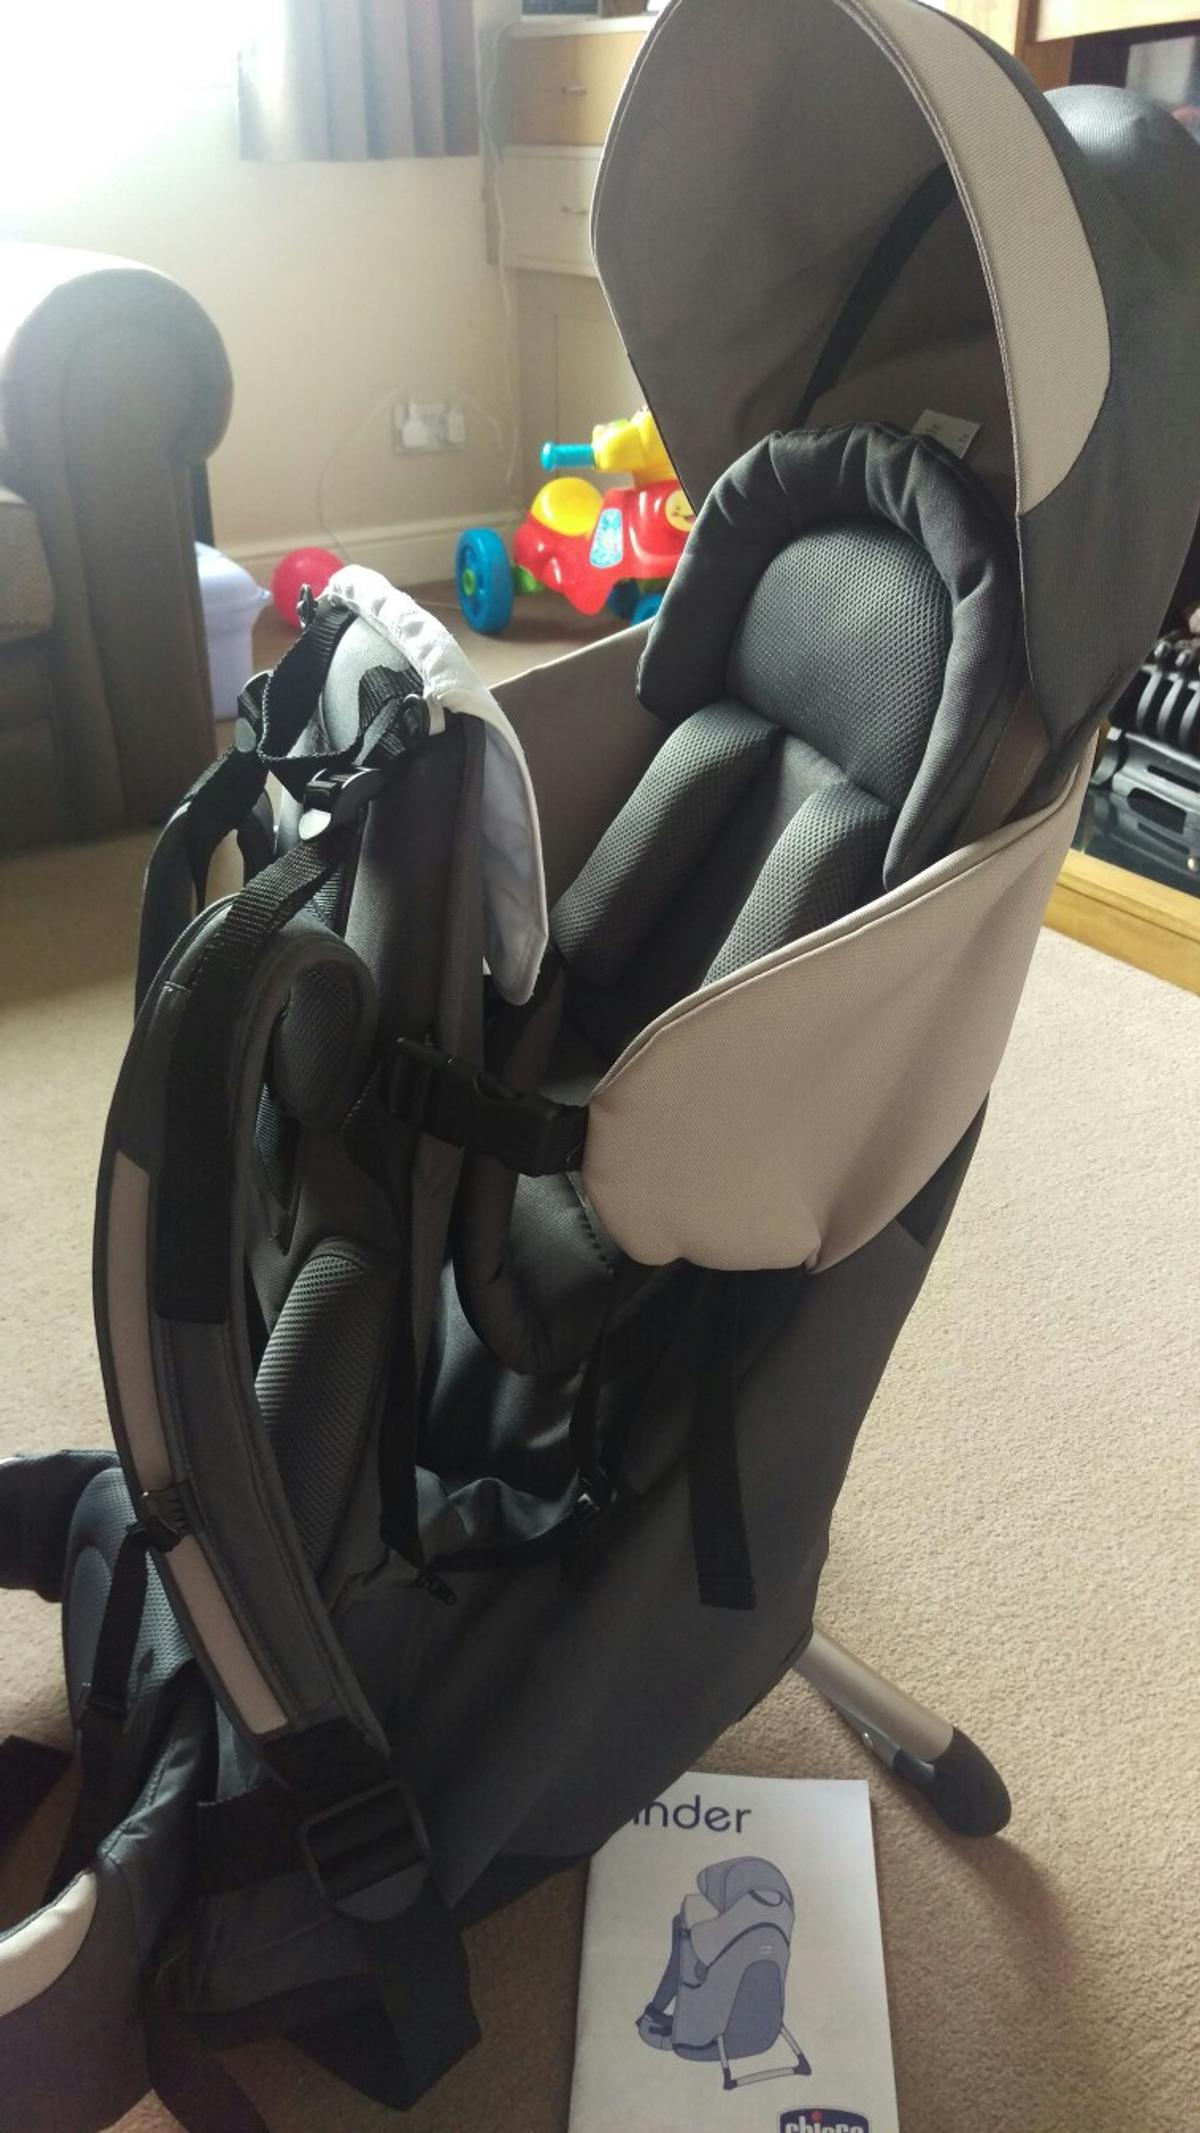 55dc6d5f3b4 Chicco Finder baby carrier   backpack in S20 Sheffield for £45.00 ...